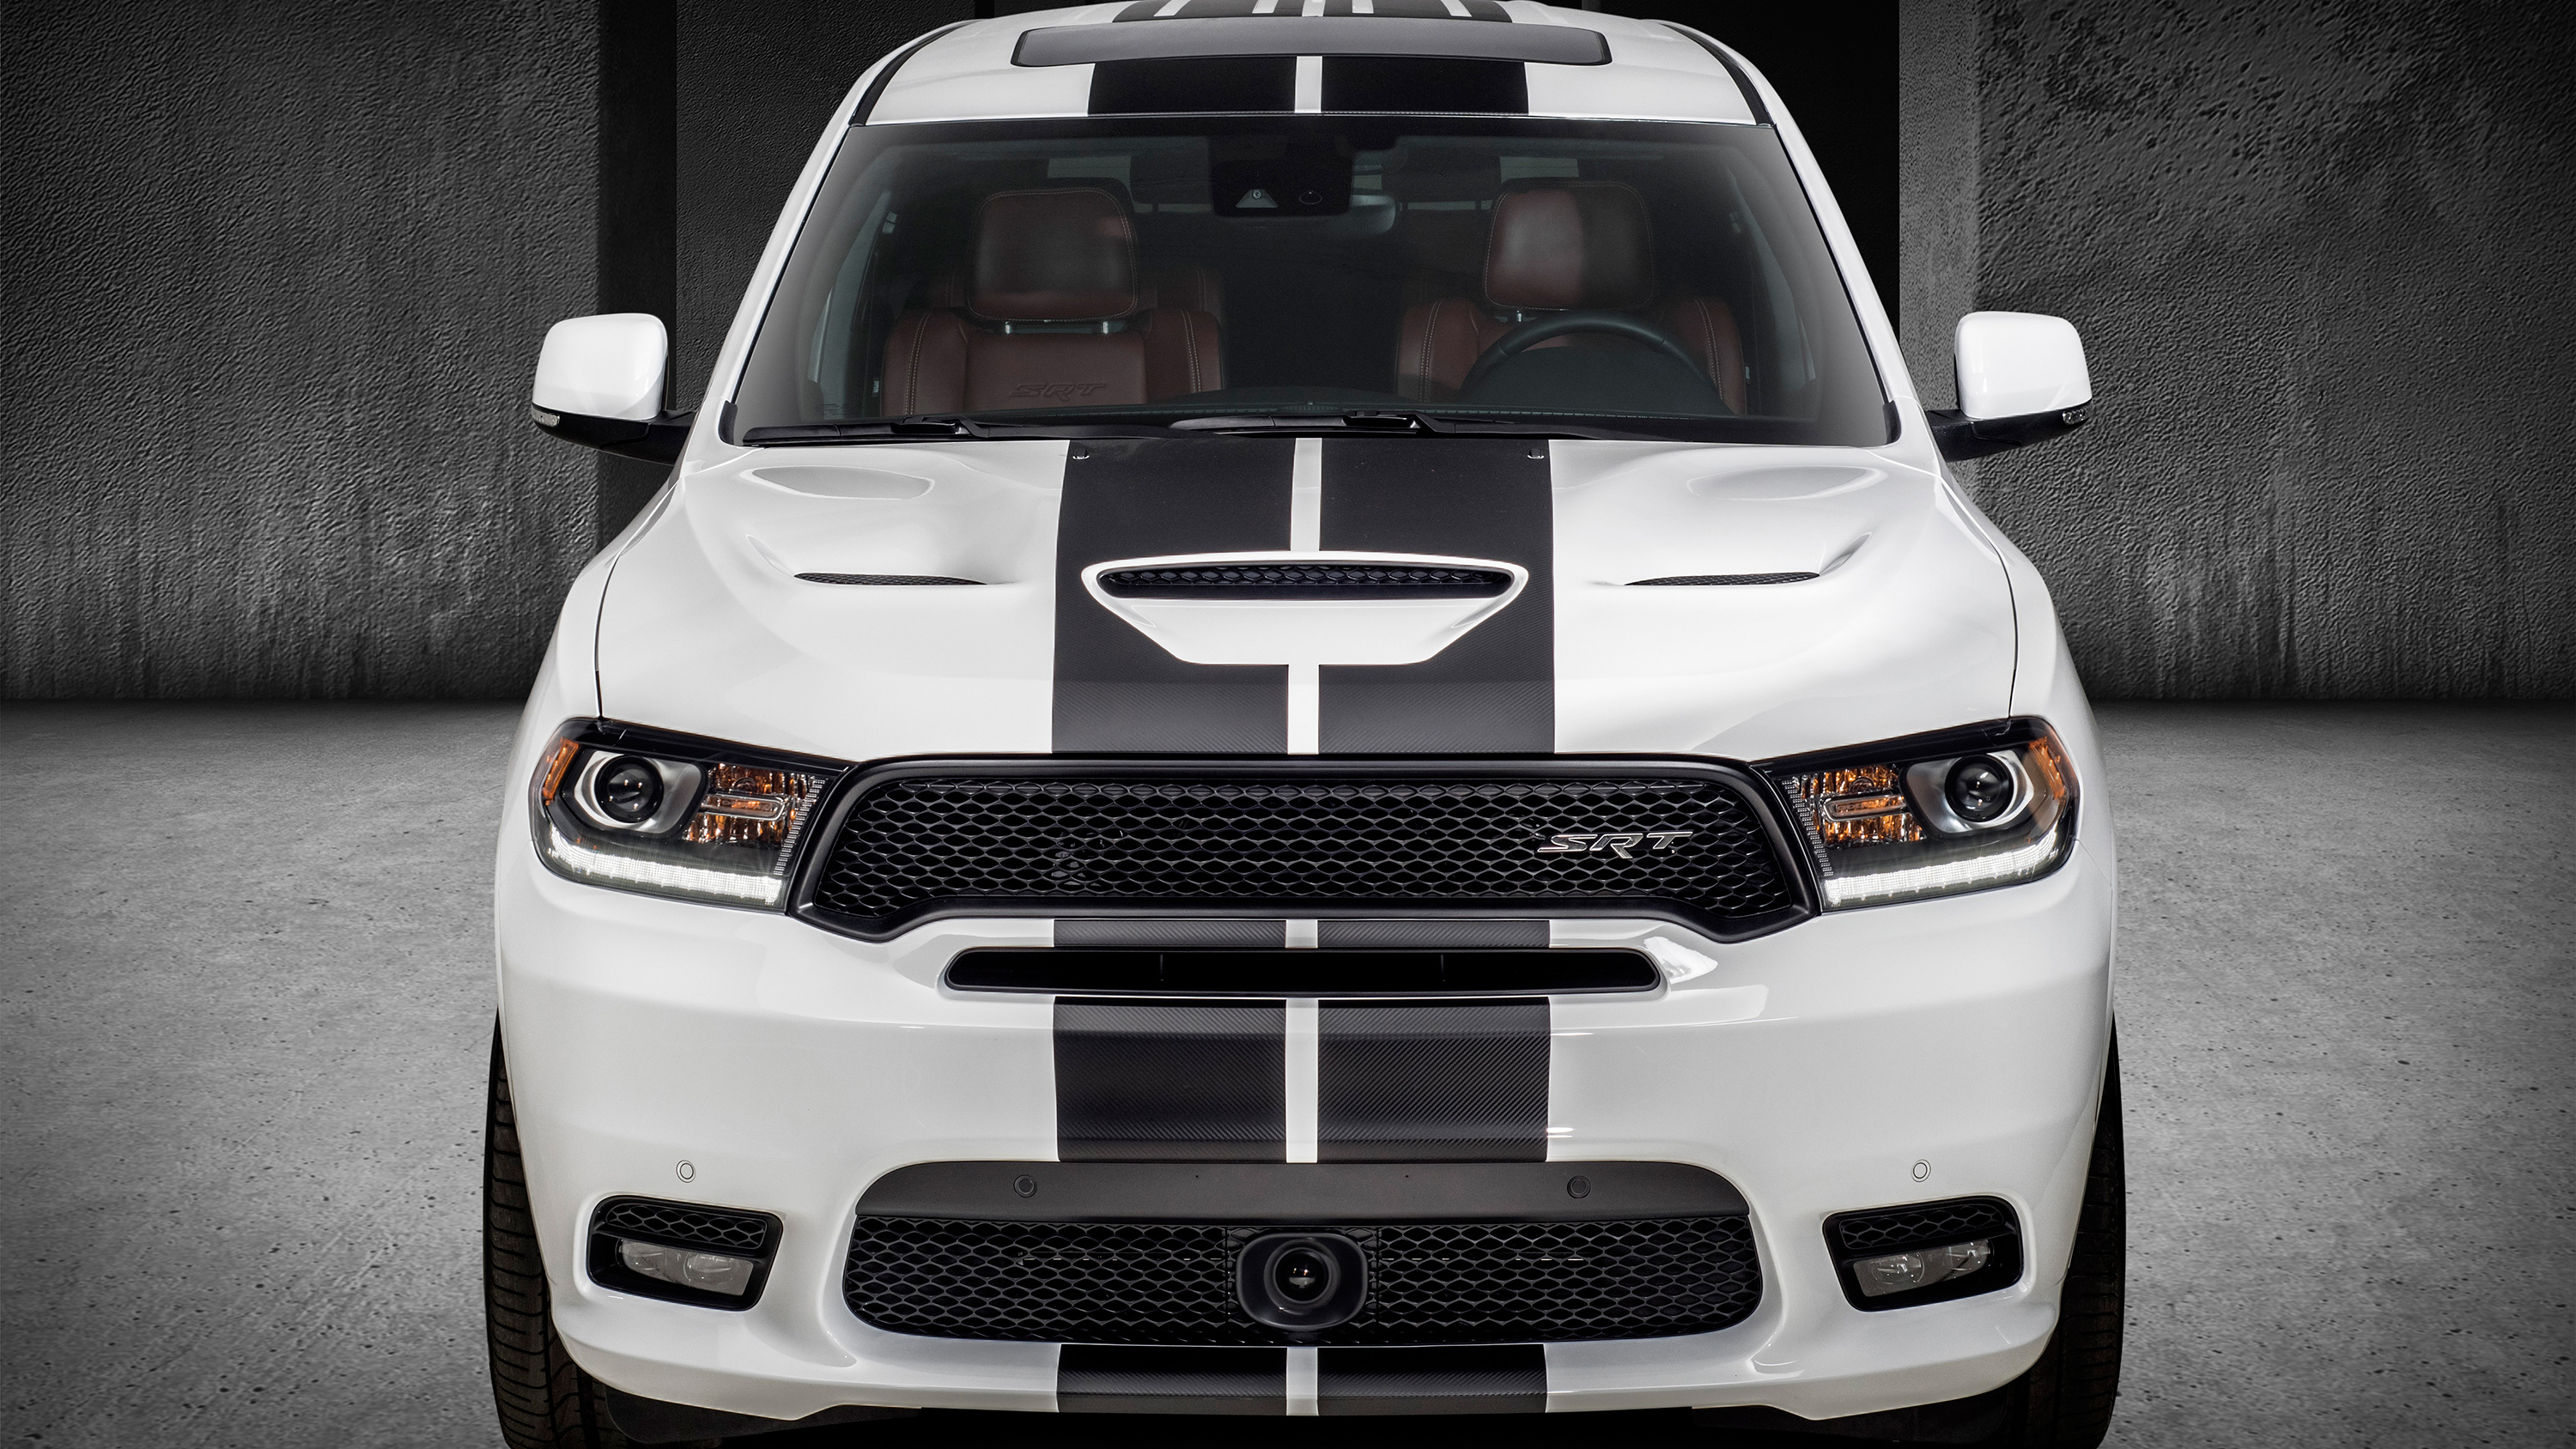 2018 Mopar Dodge Durango Srt Wallpaper Hd Car Wallpapers Id 9566